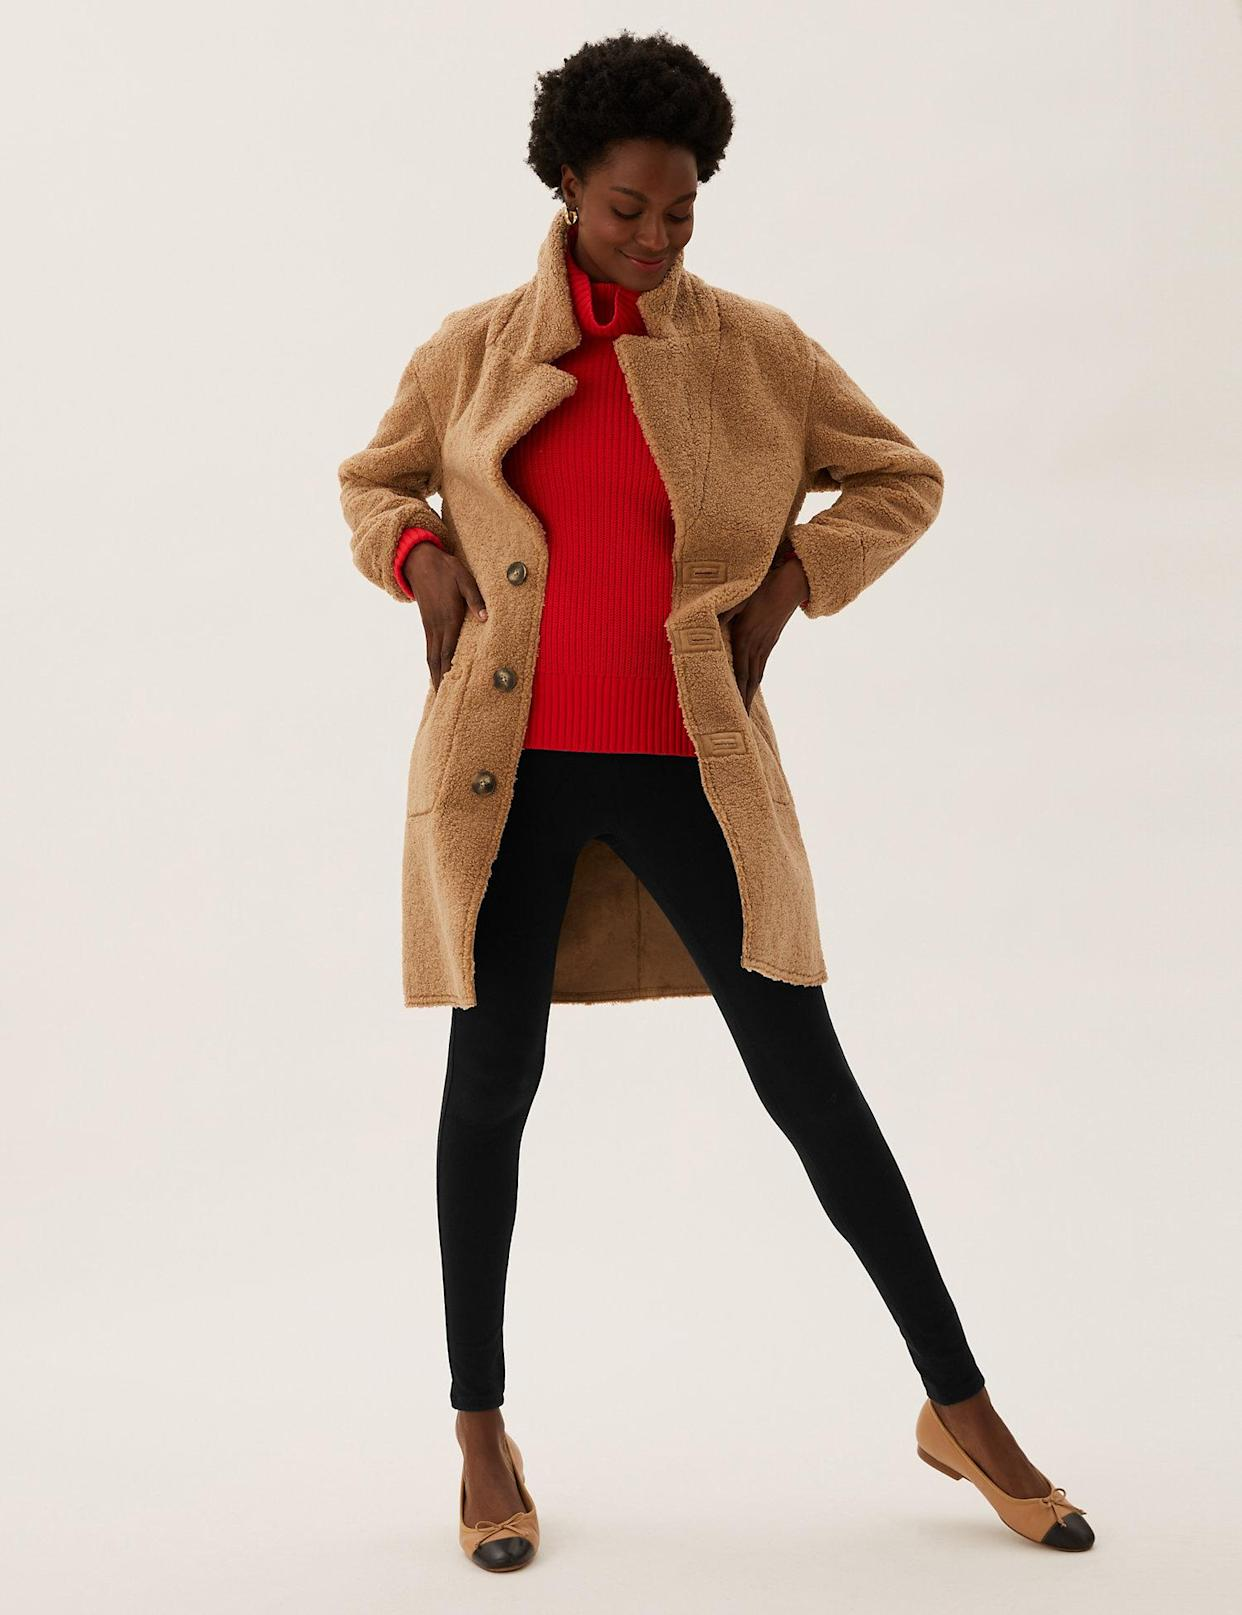 The jeggings are the perfect winter wardrobe addition. (Marks & Spencer)